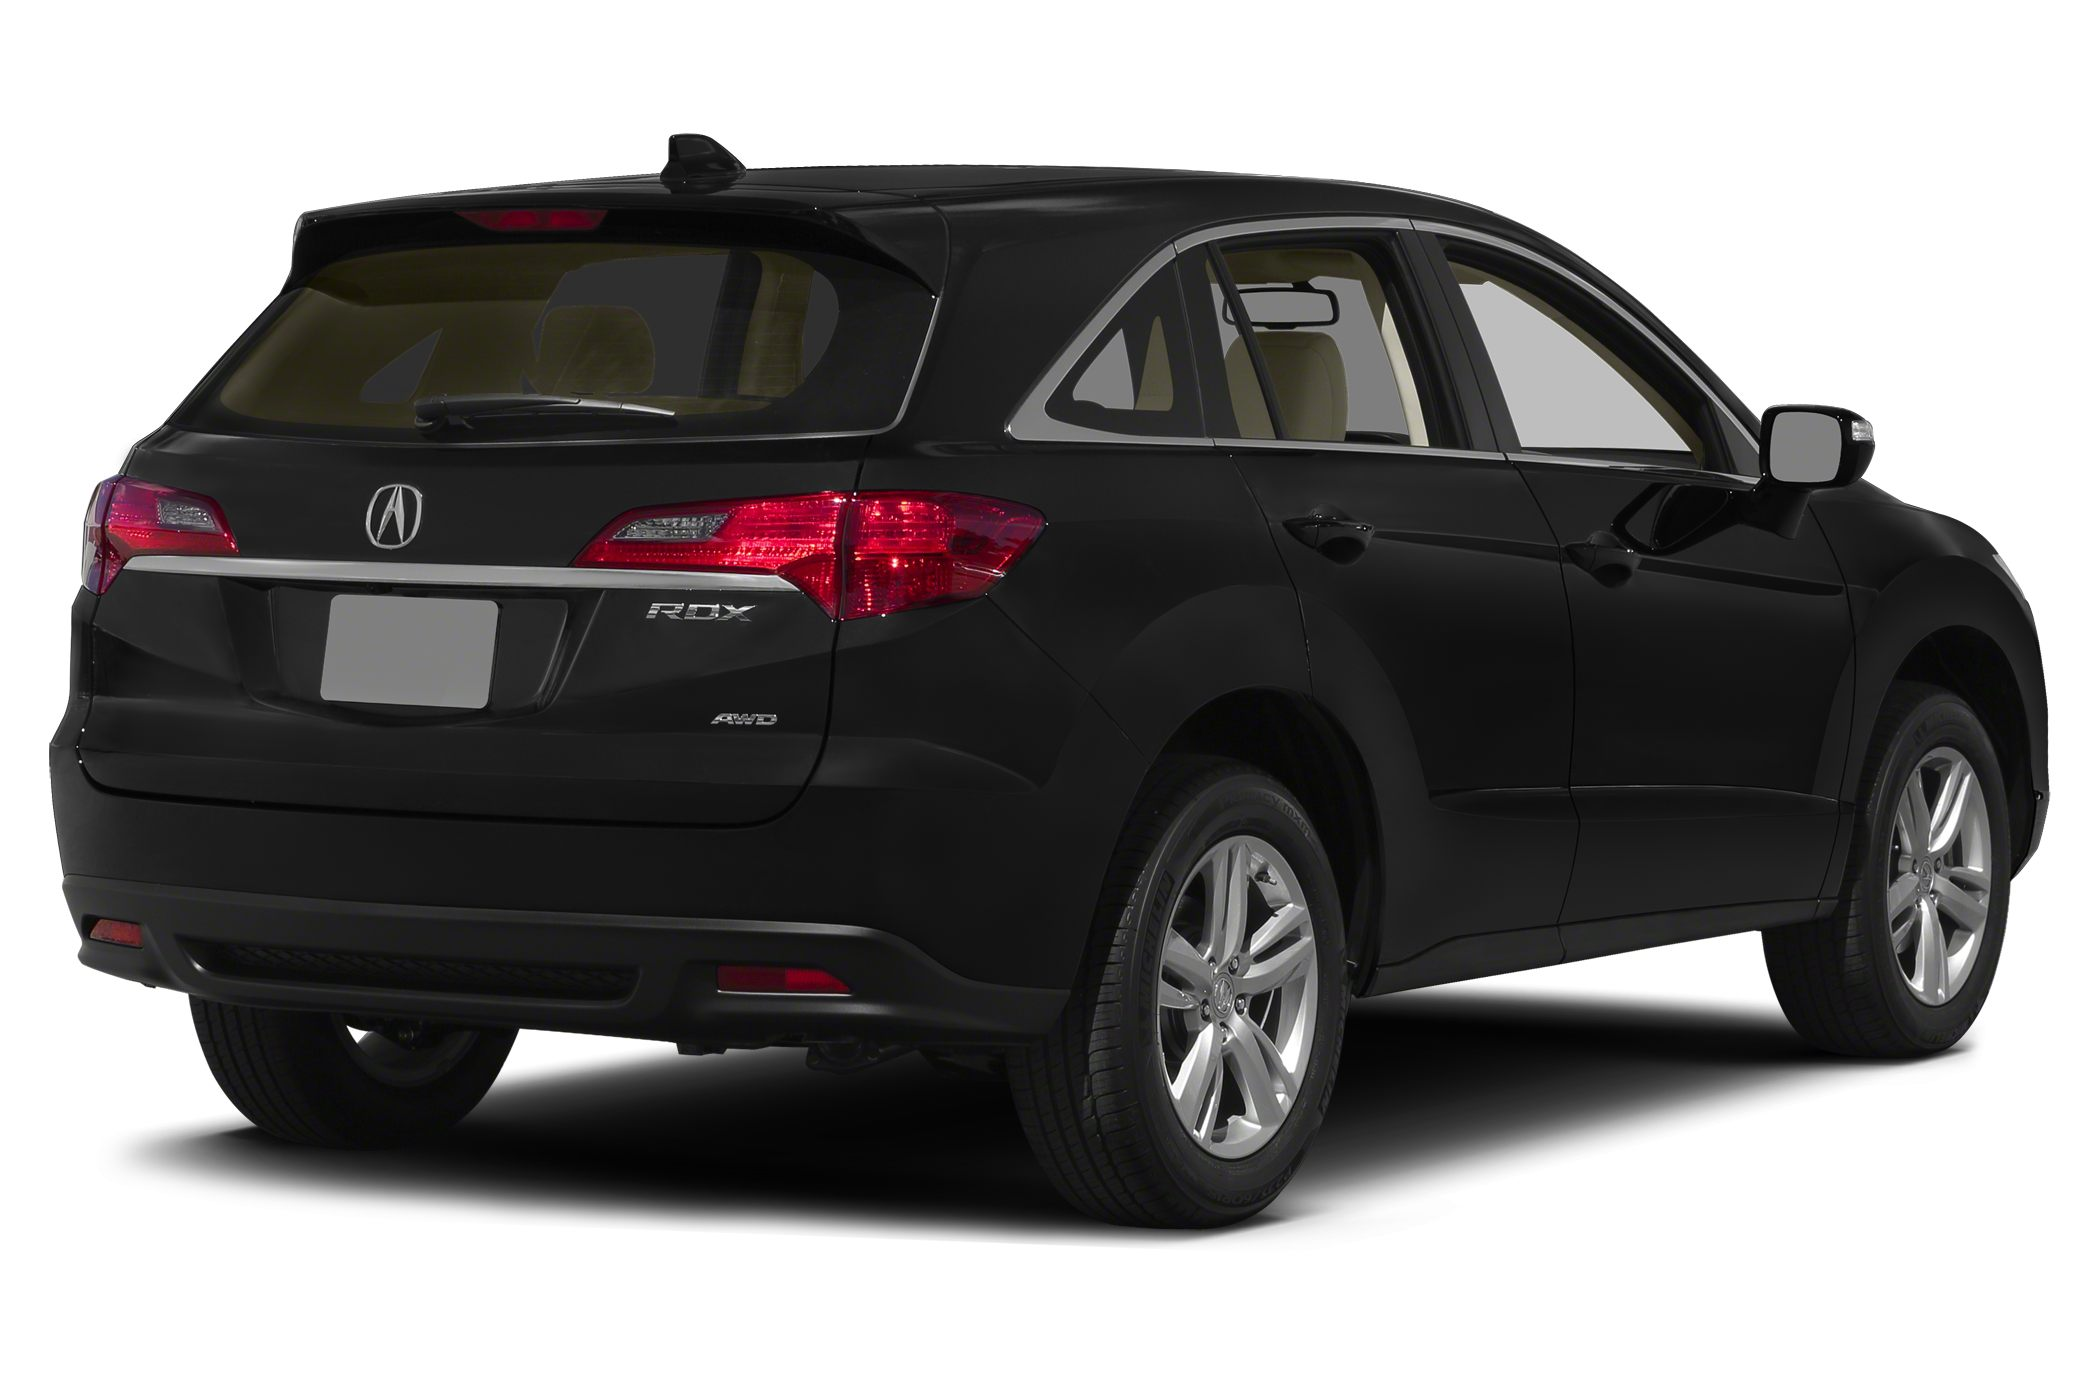 2015 Acura RDX Base 3-DAY EXCHANGEONE PRICE STOP NO HASSLE NO HAGGLE CAR BUYING EXPERIENCE